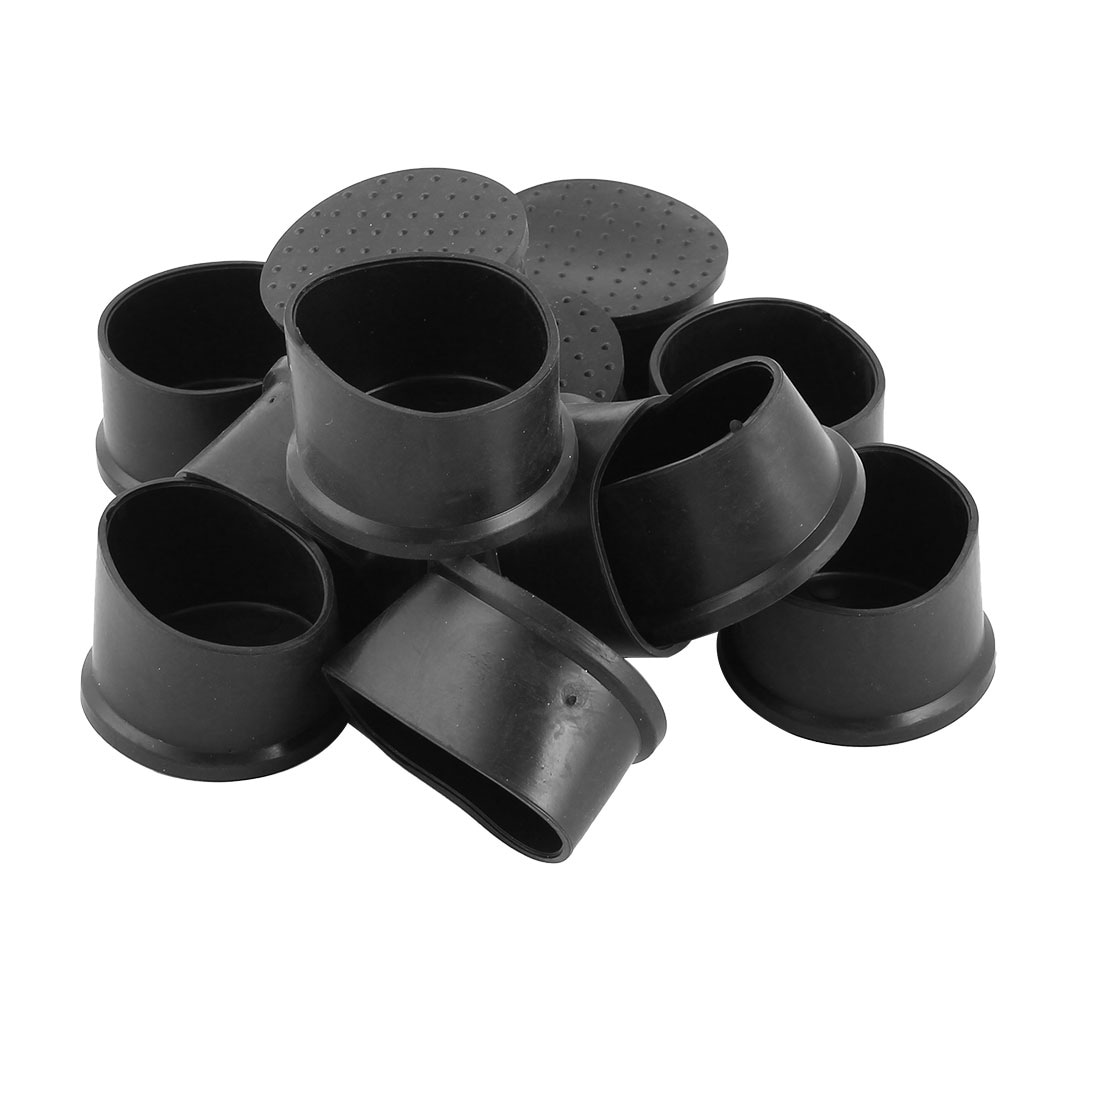 Chair Foot Caps Home Rubber Furniture Chair Table Foot Cover Pad Caps Black 50mm Hole Dia 12 Pcs